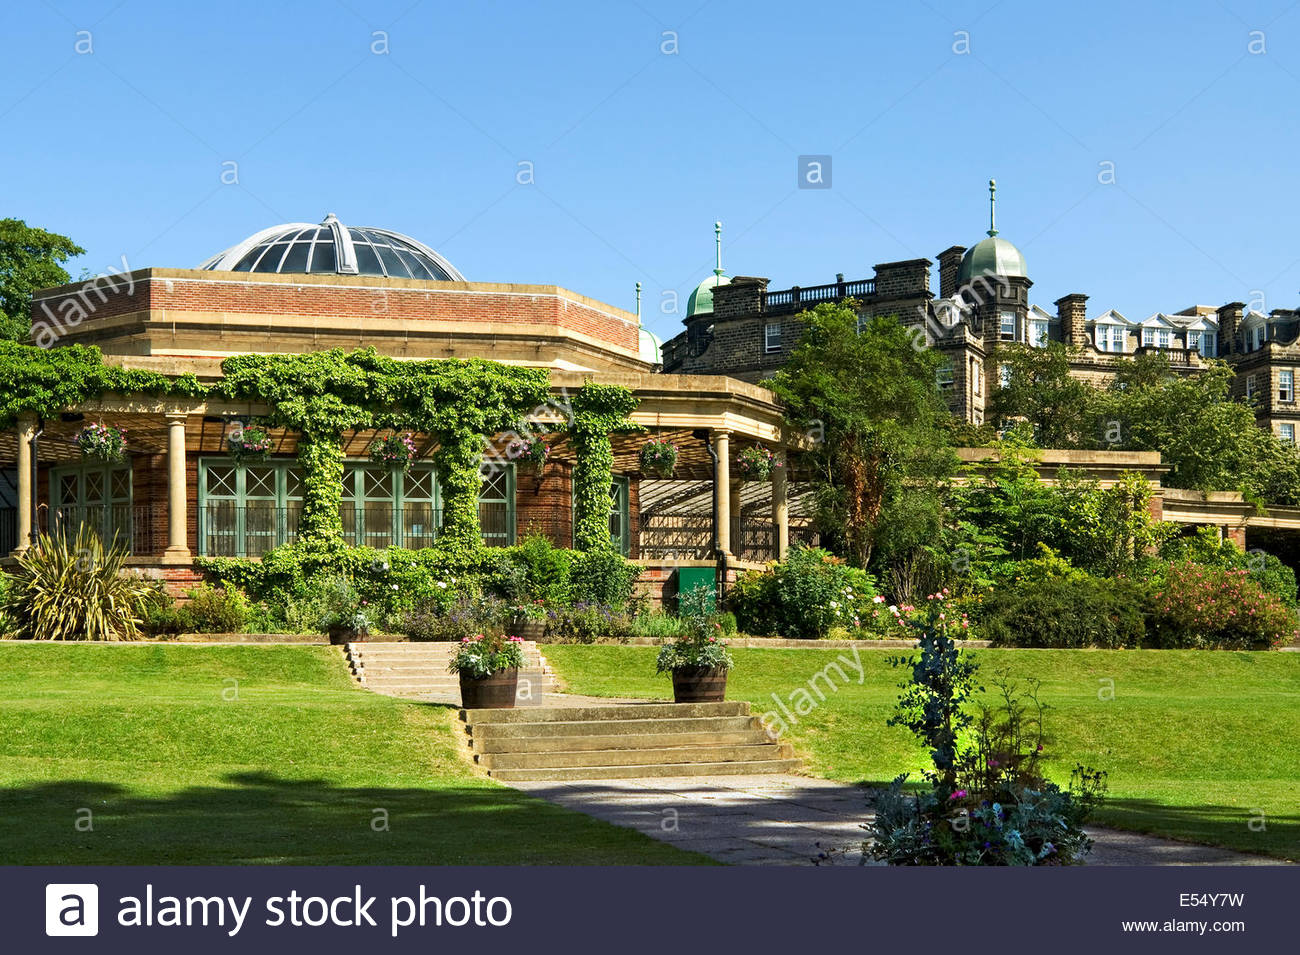 Sun Pavilion at the Valley Gardens in Harrogate (or Harrogate Spa) a spa town in North Yorkshire, England. Stock Photo